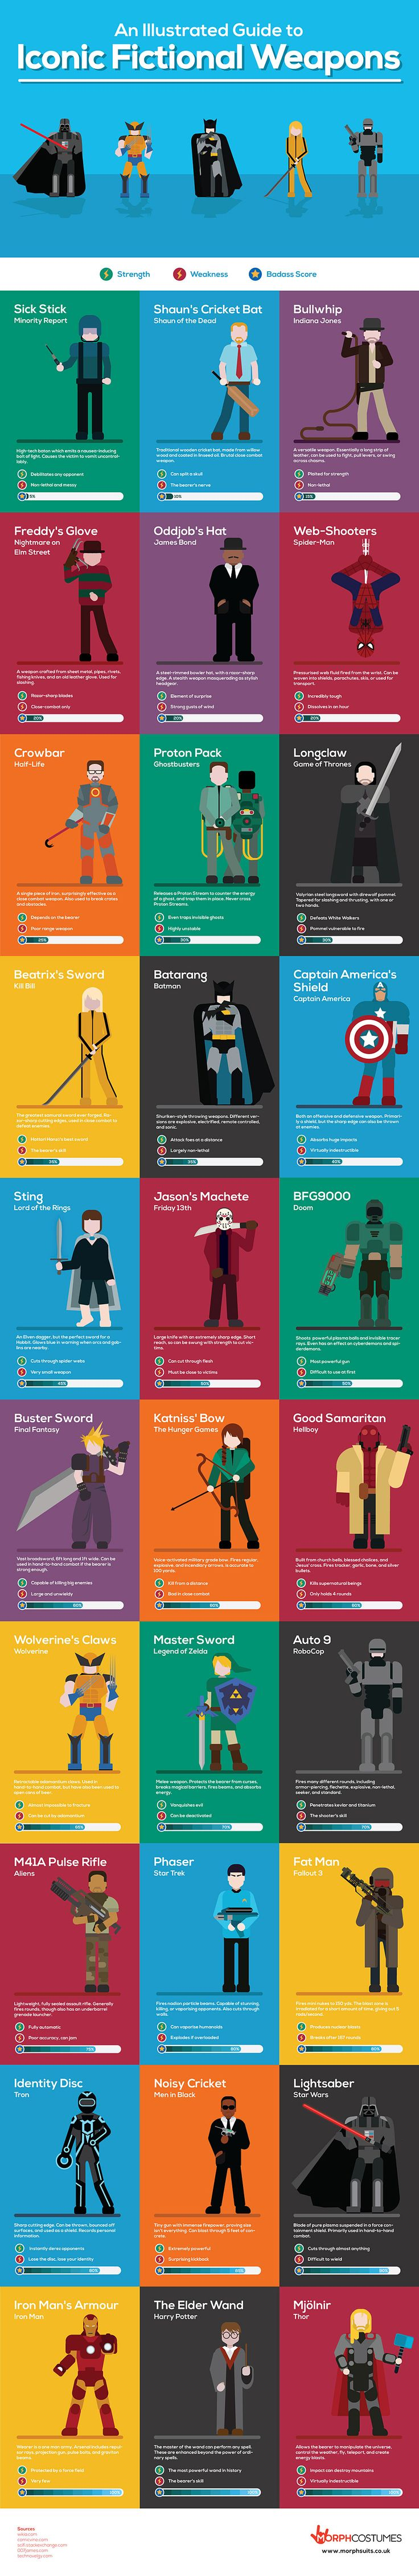 An Illustrated Guide to Iconic Fictional Weapons http://geekxgirls.com/article.php?ID=5193